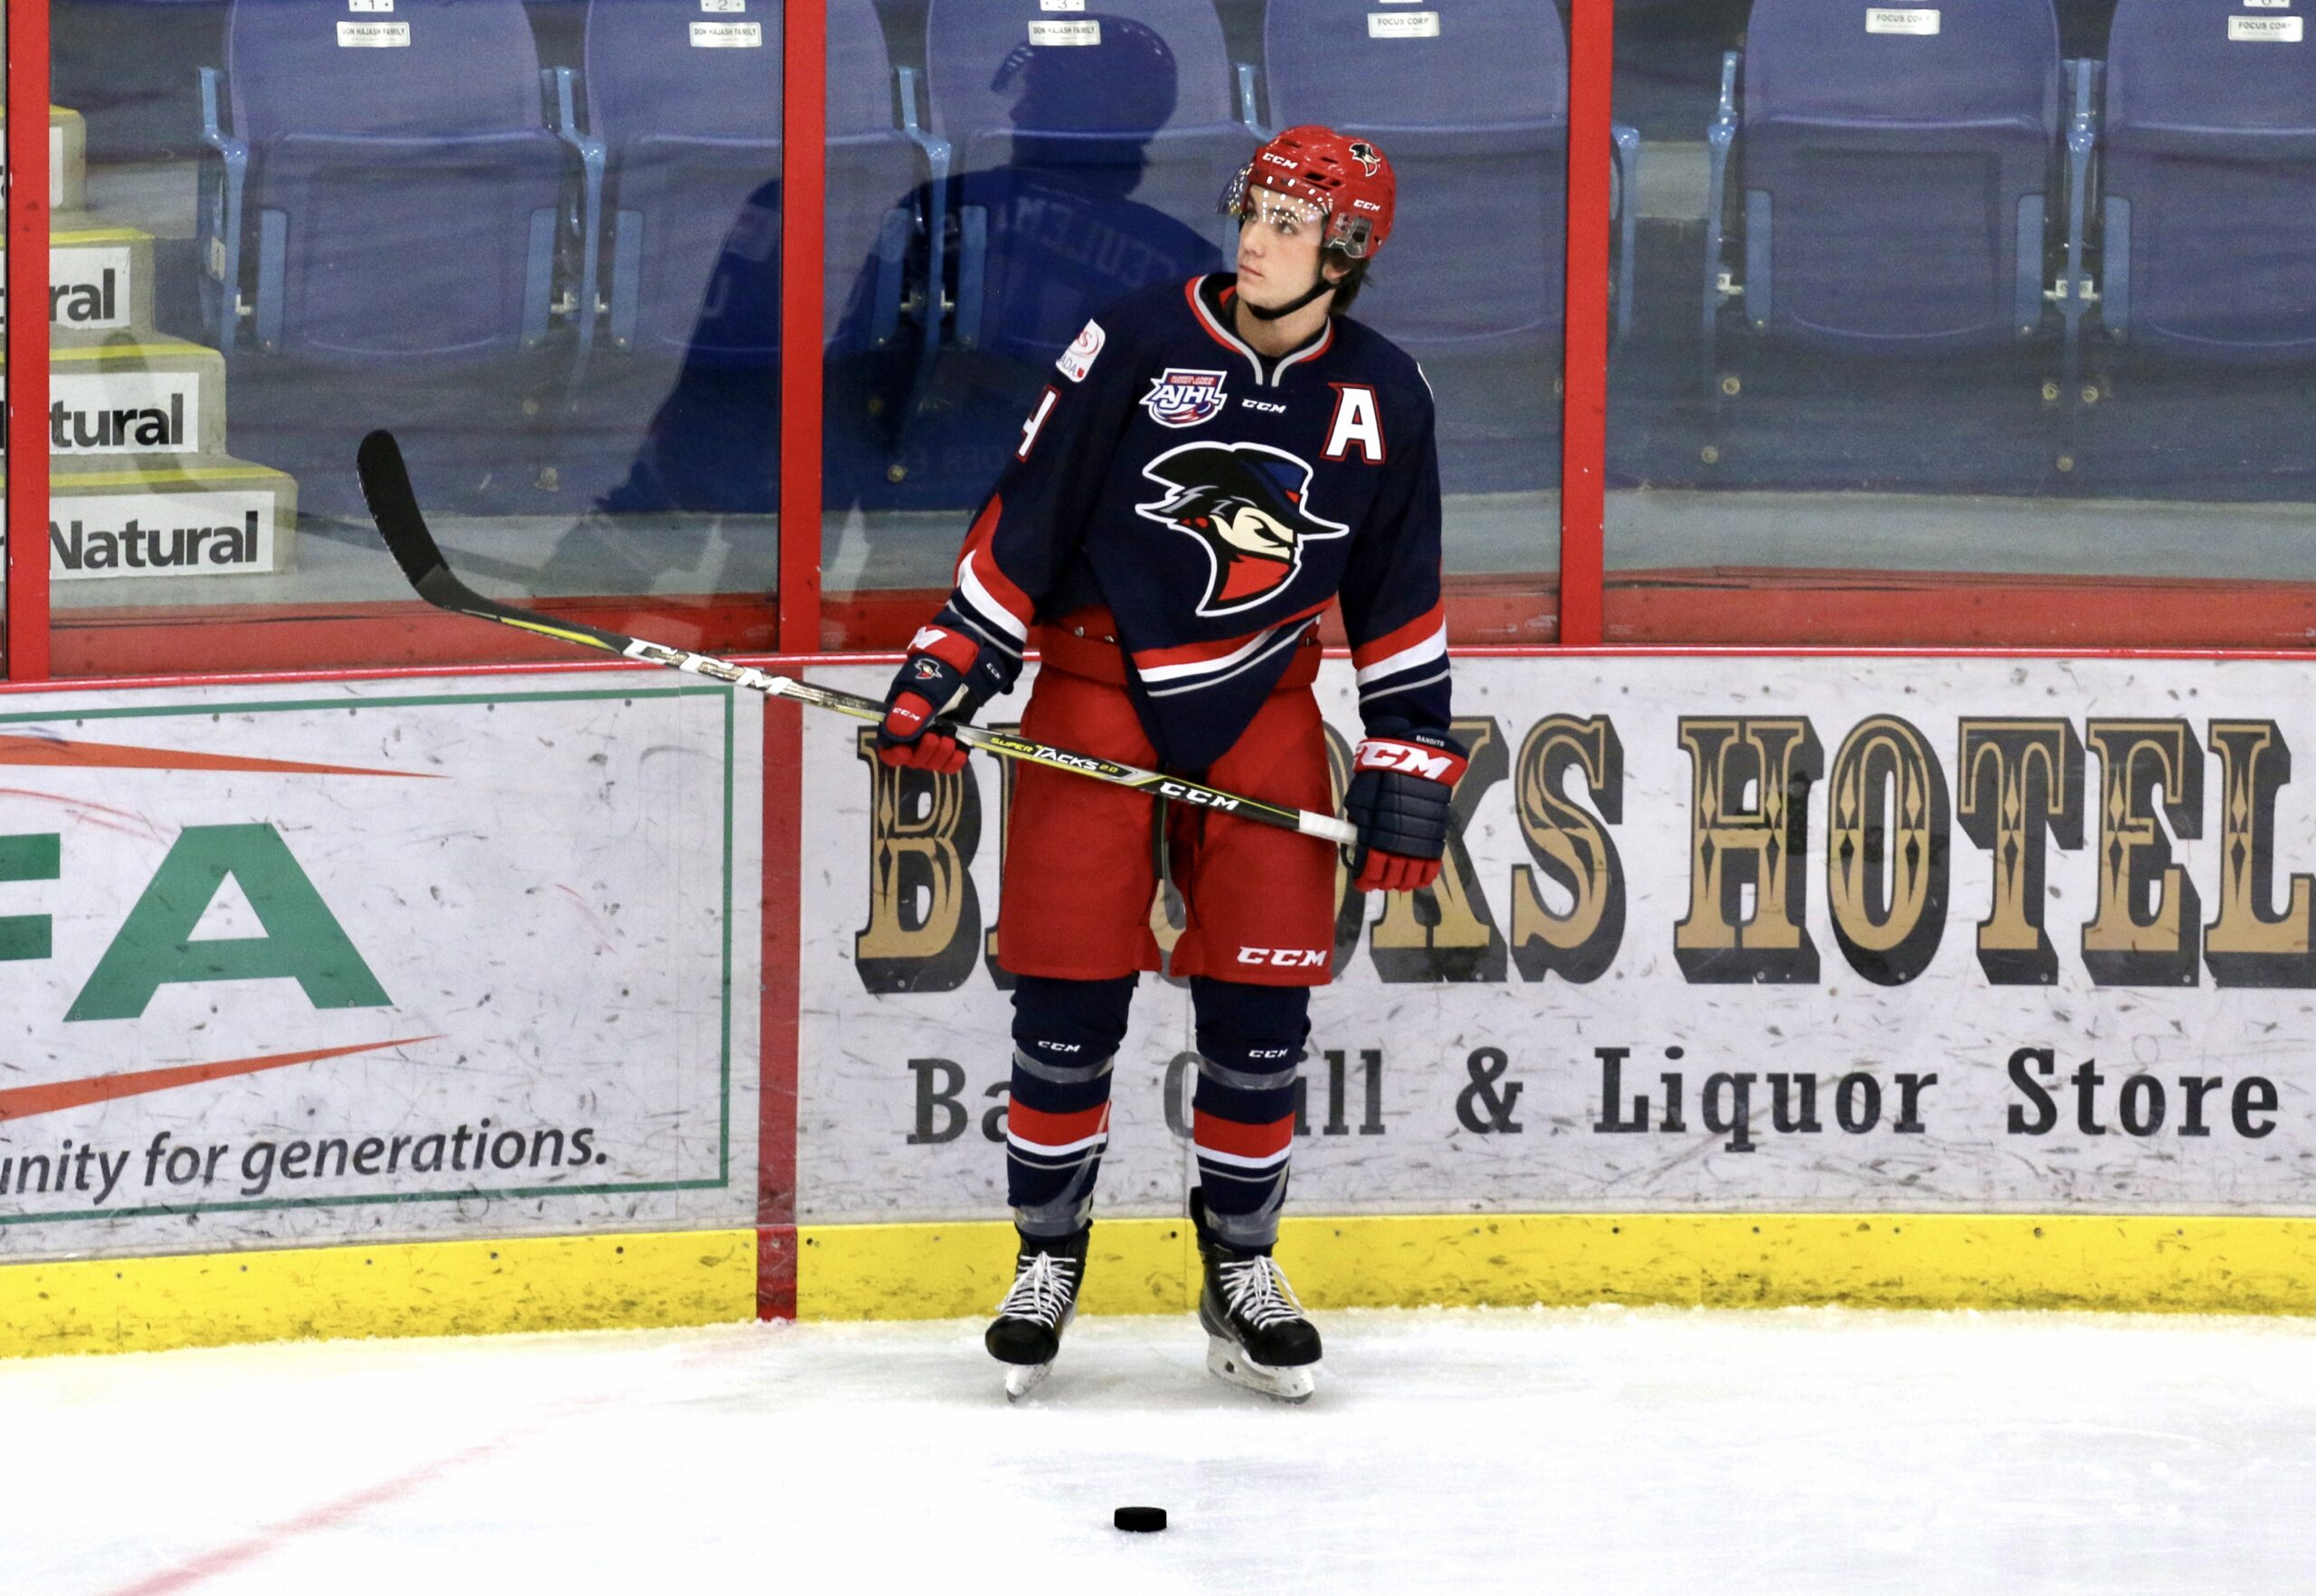 NHL Draft: Ceulemans Selected 25th Overall by Columbus Blue Jackets